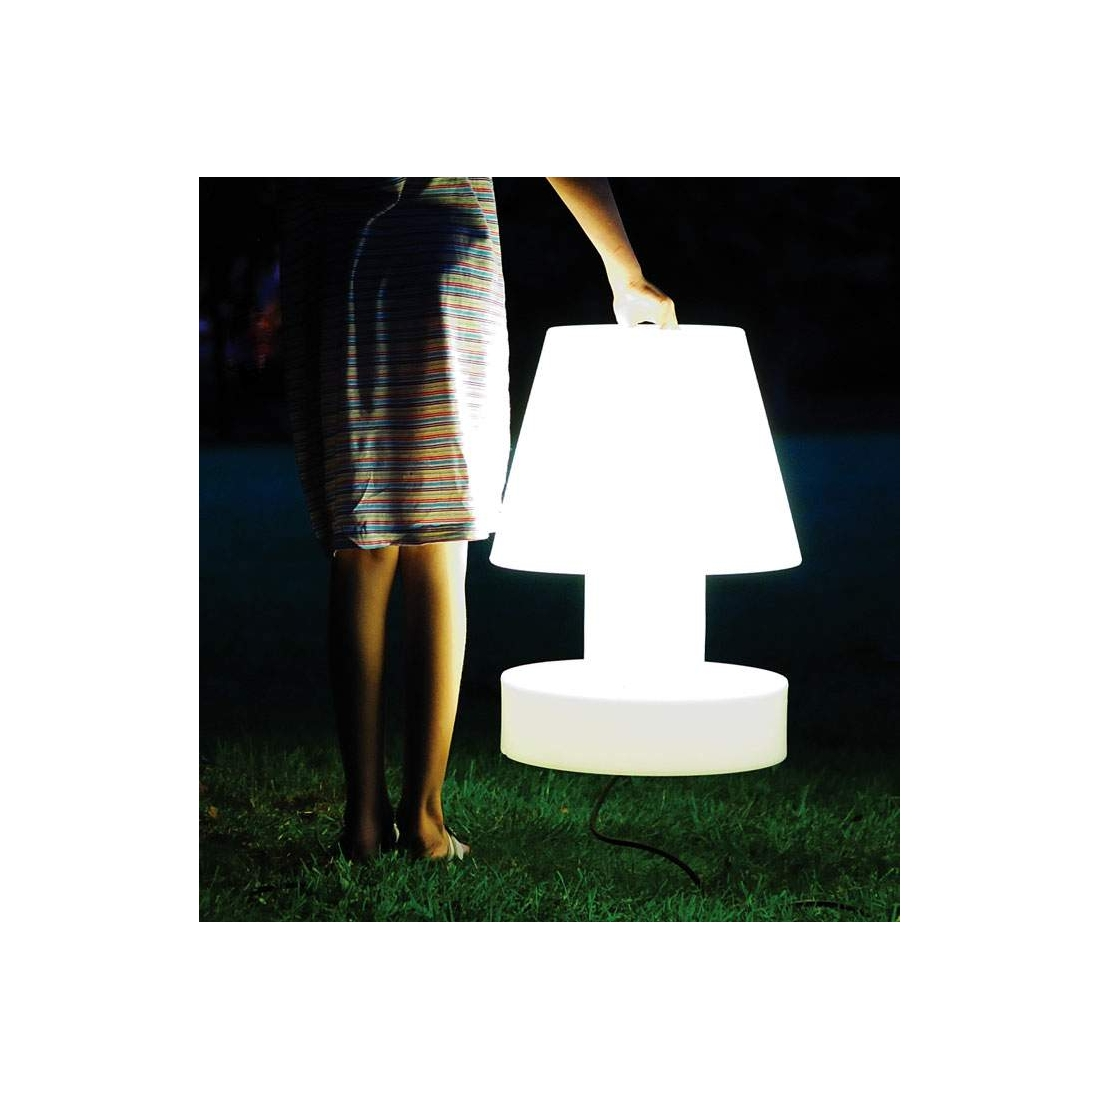 Lumi re portable sans fil bloom 56 cm lampes poser for Lumiere exterieur sans fil